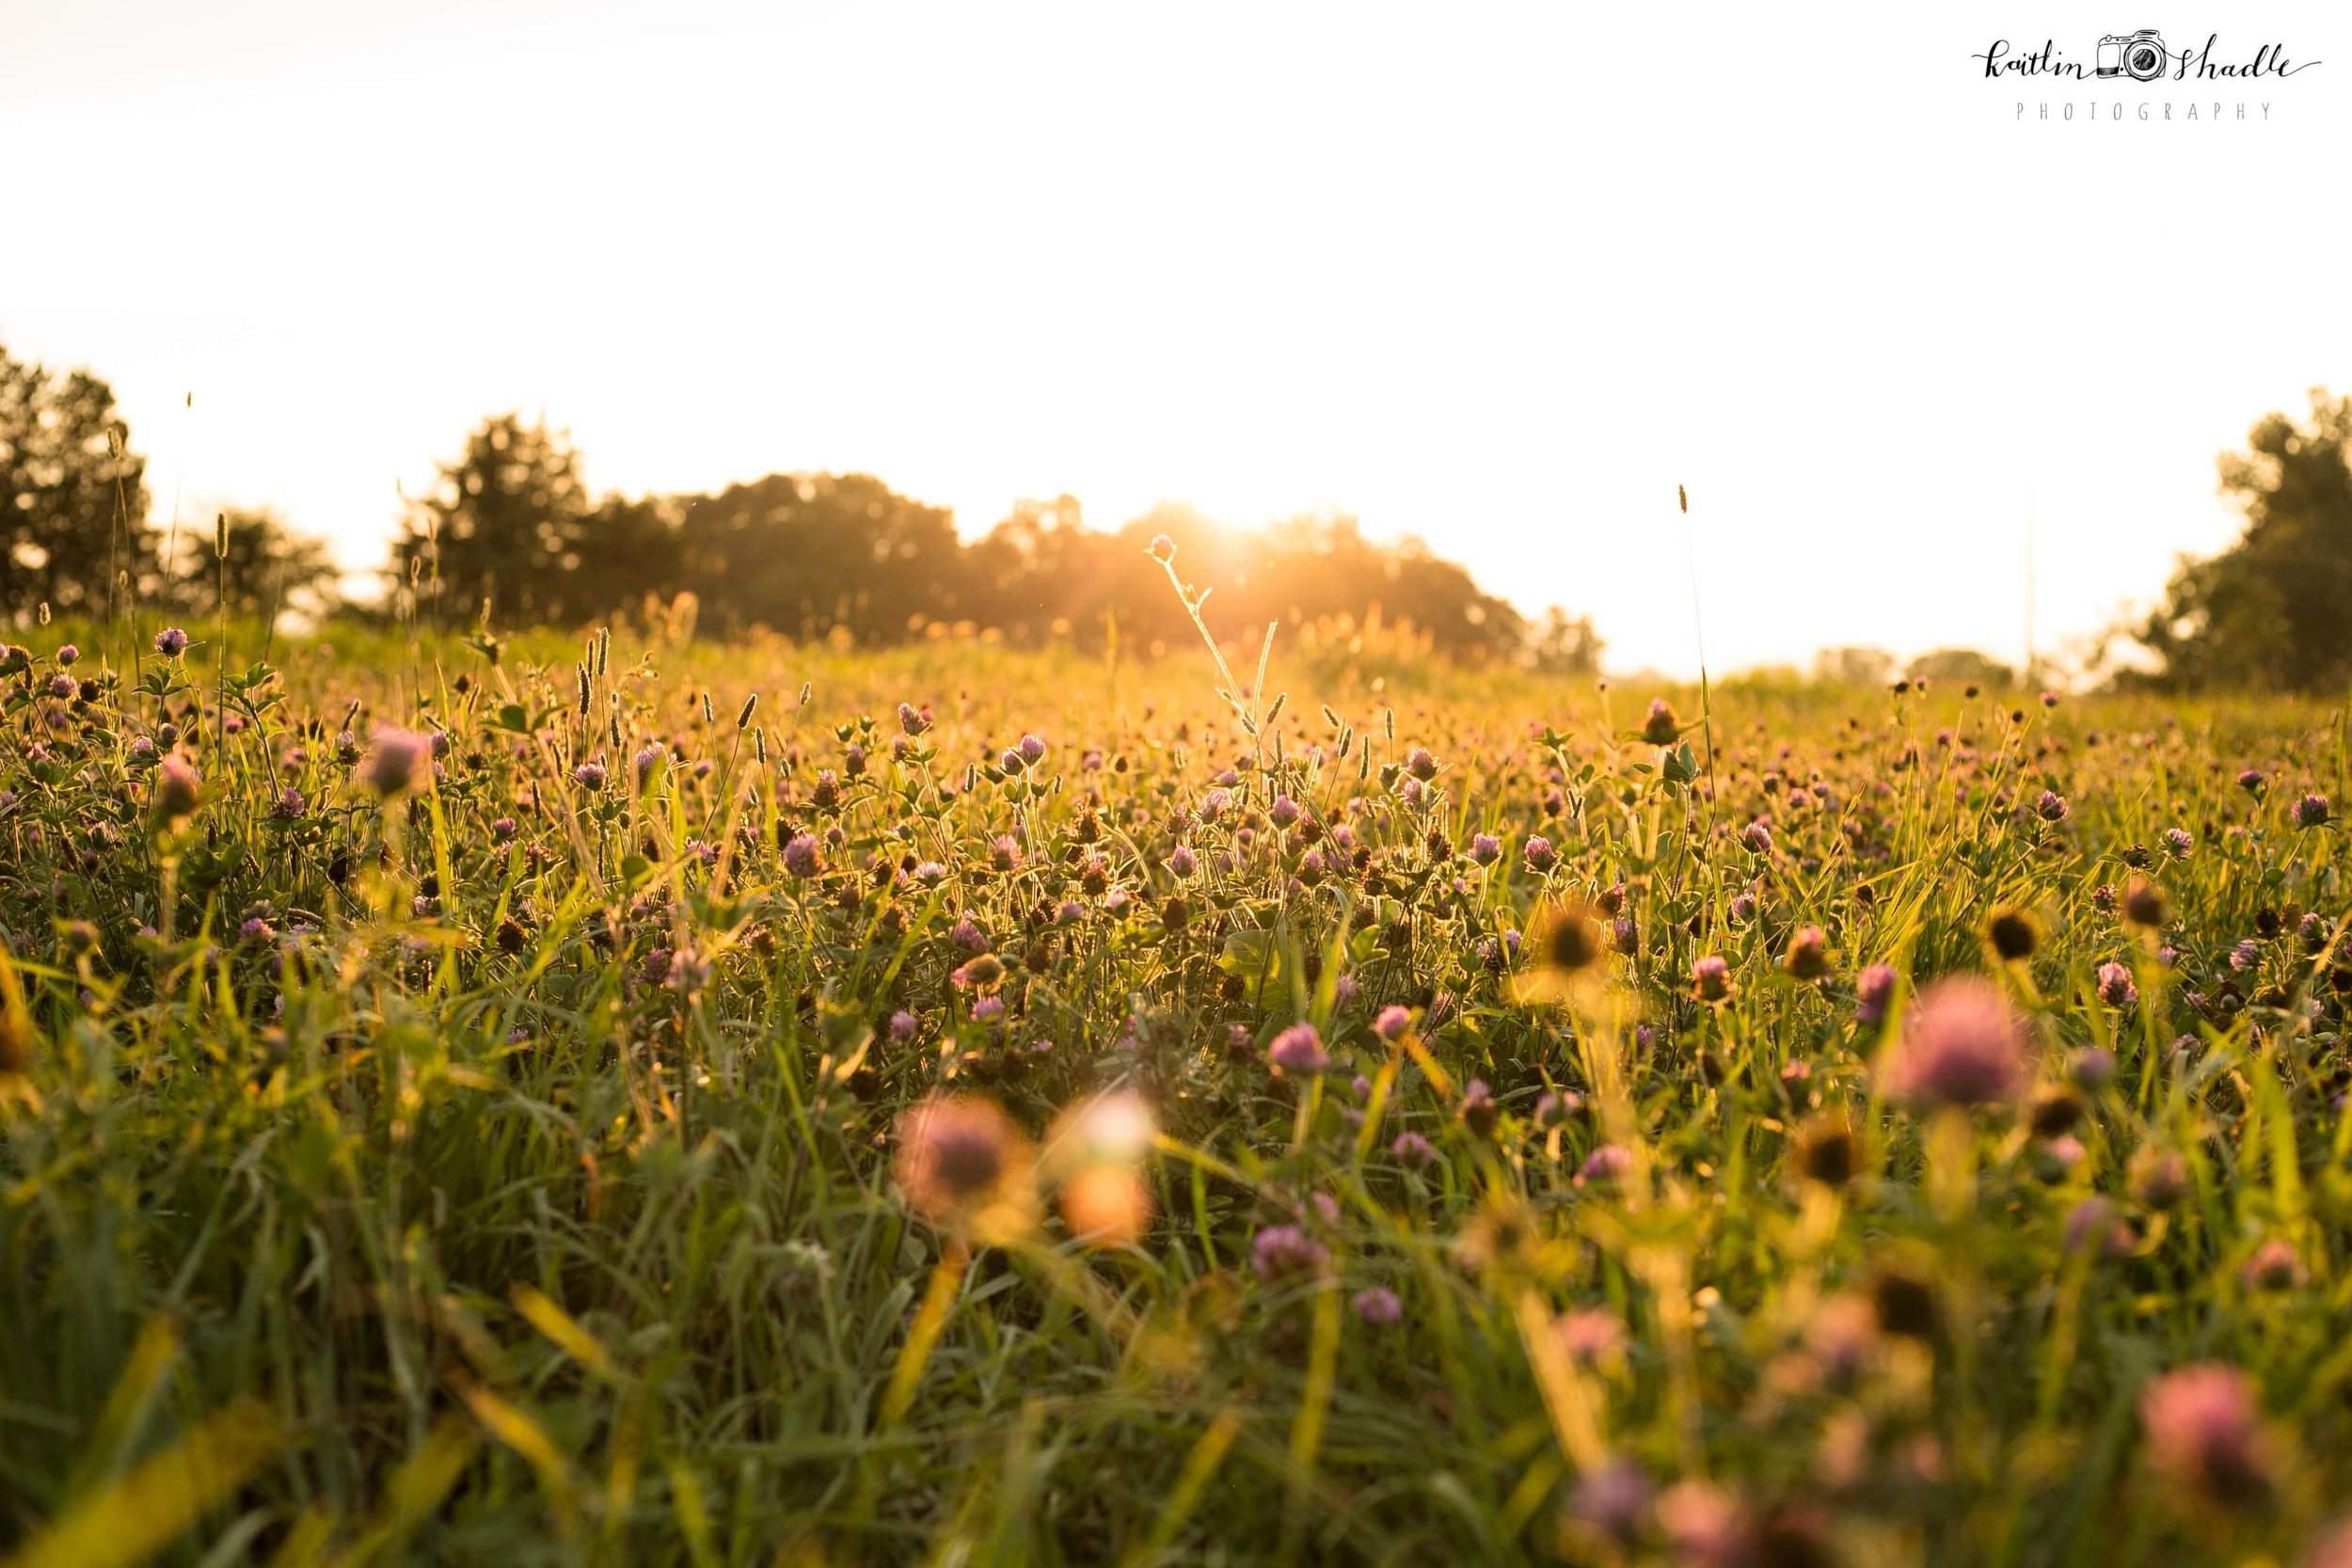 Clover Field at the Golden Hour